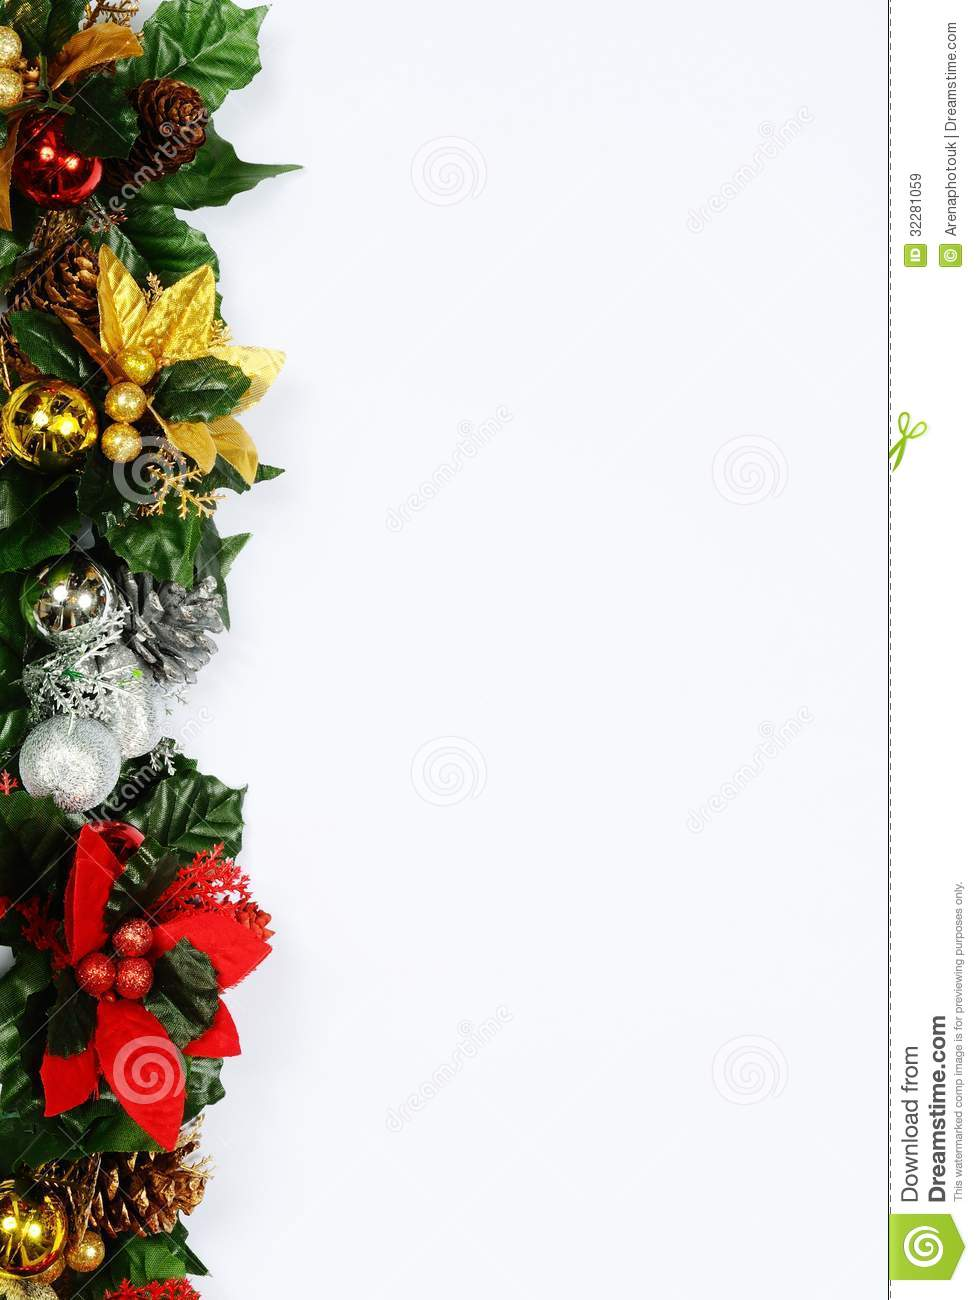 Christmas Page Edging. Royalty Free Stock Images - Image: 32281059